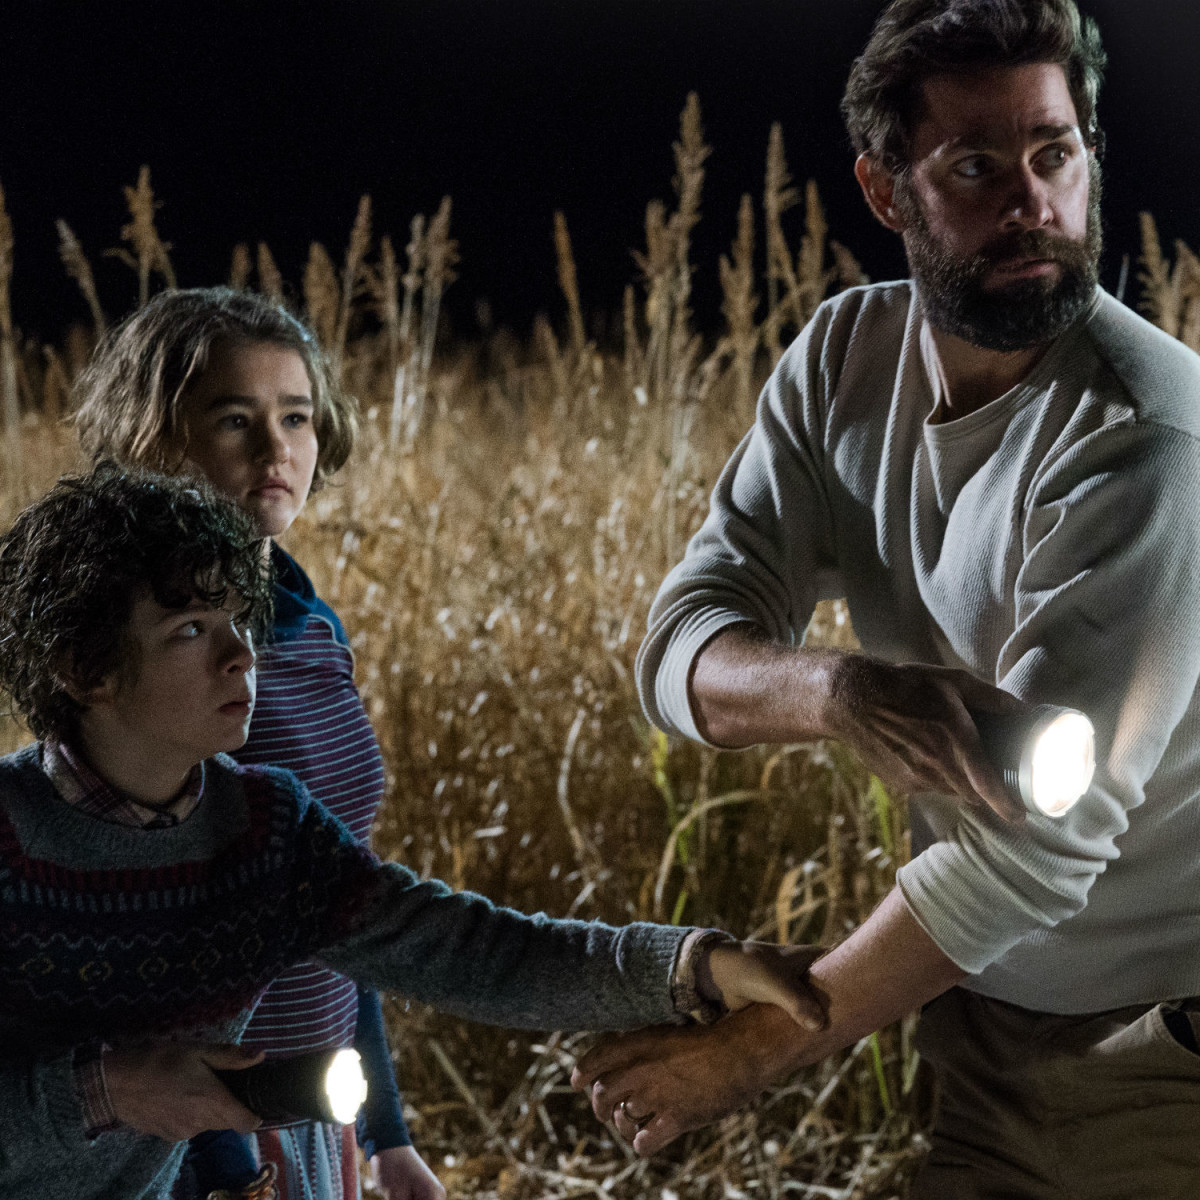 Noah Jupe, Millicent Simmonds, and John Krasinski in A Quiet Place